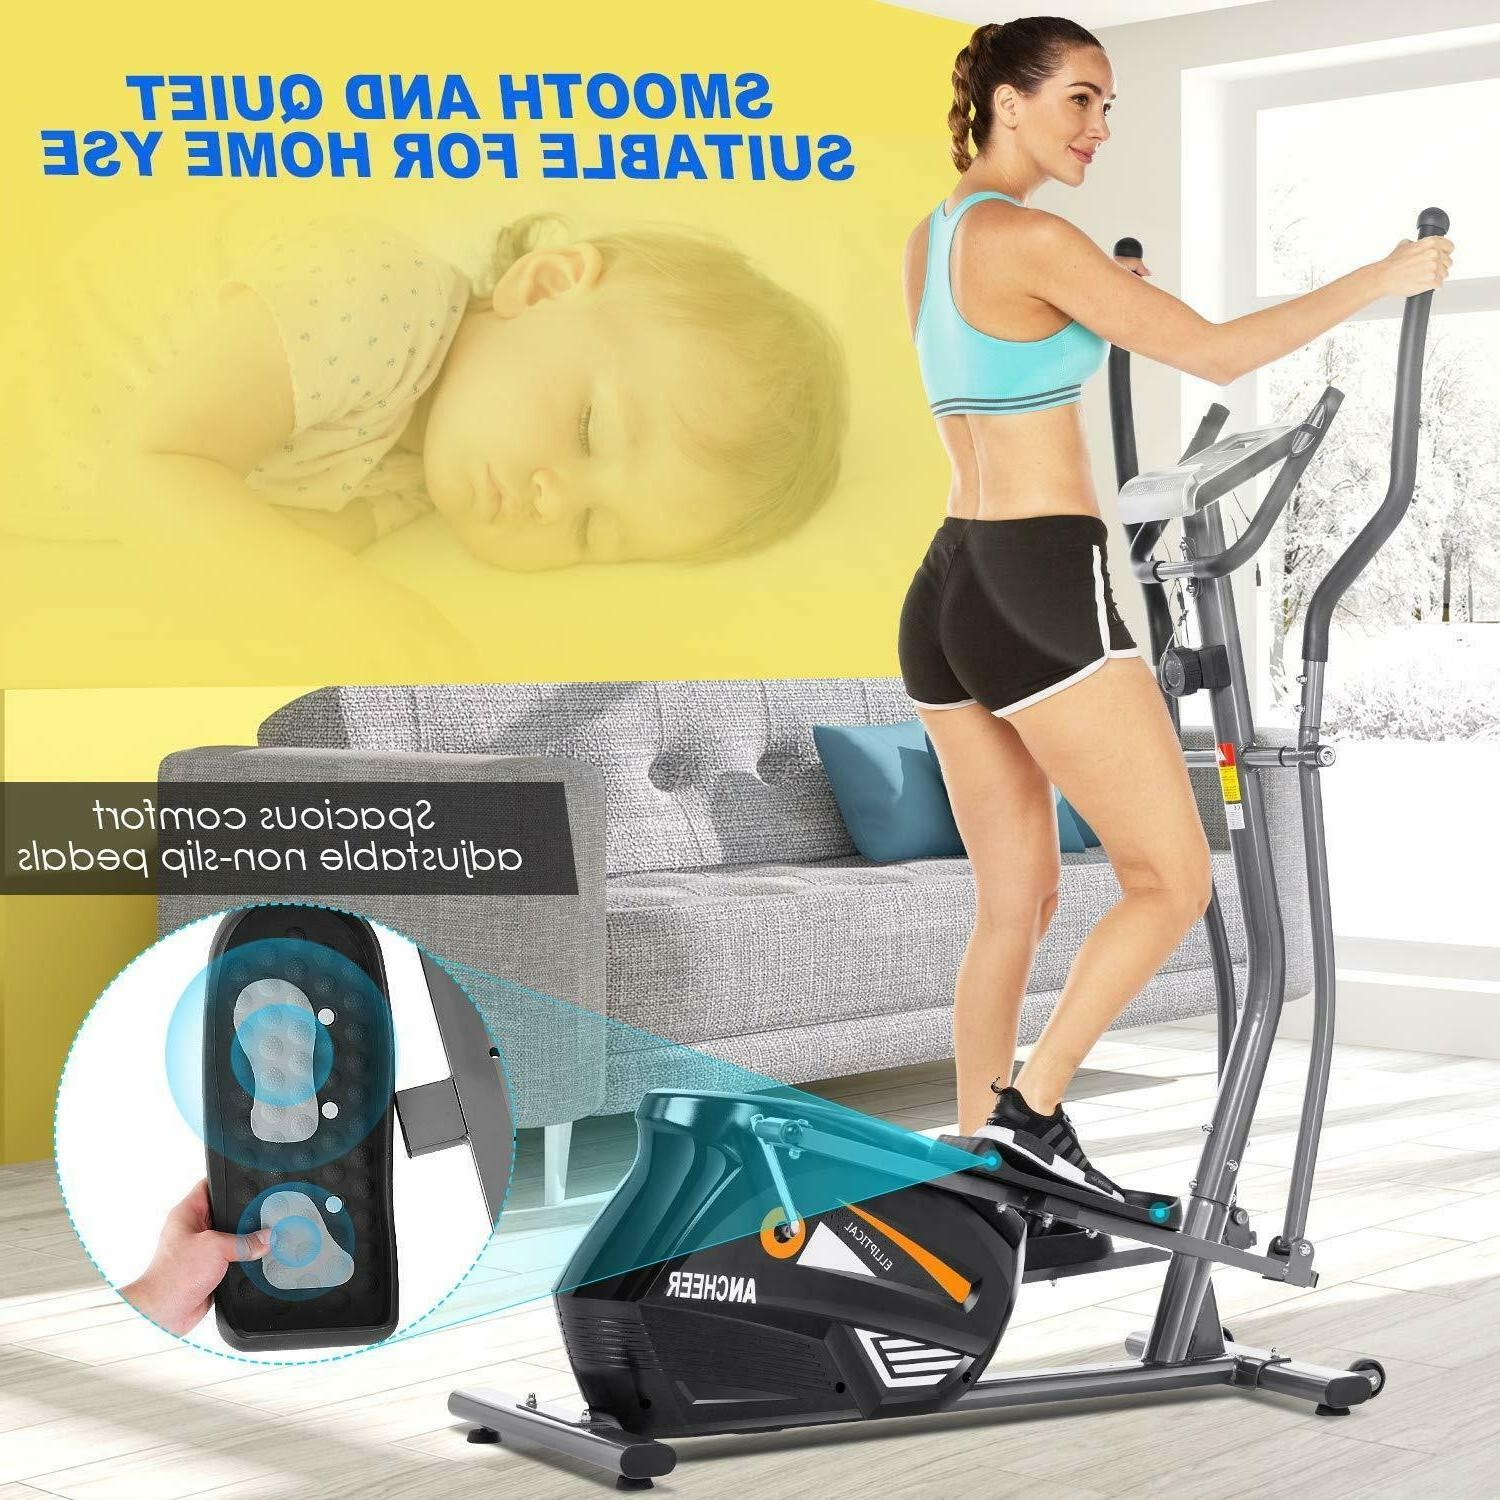 10 Level Resistance Magnetic Elliptical Machine Trainer Fitn